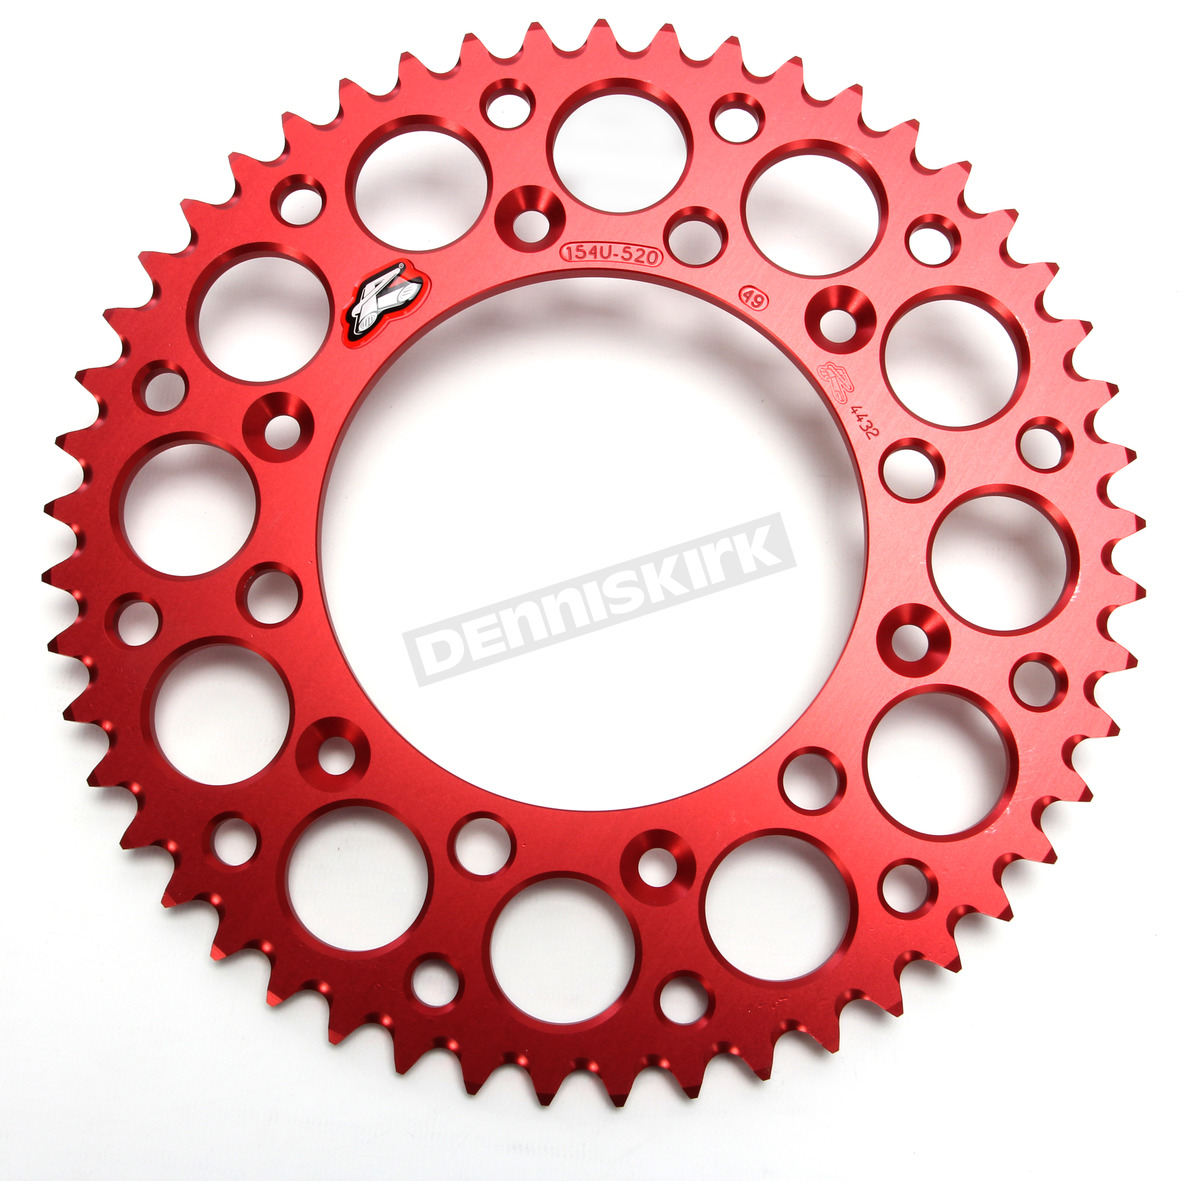 Honda CR250R 2007 Renthal Rear Sprocket 48 Tooth 154U-520-48GRSI